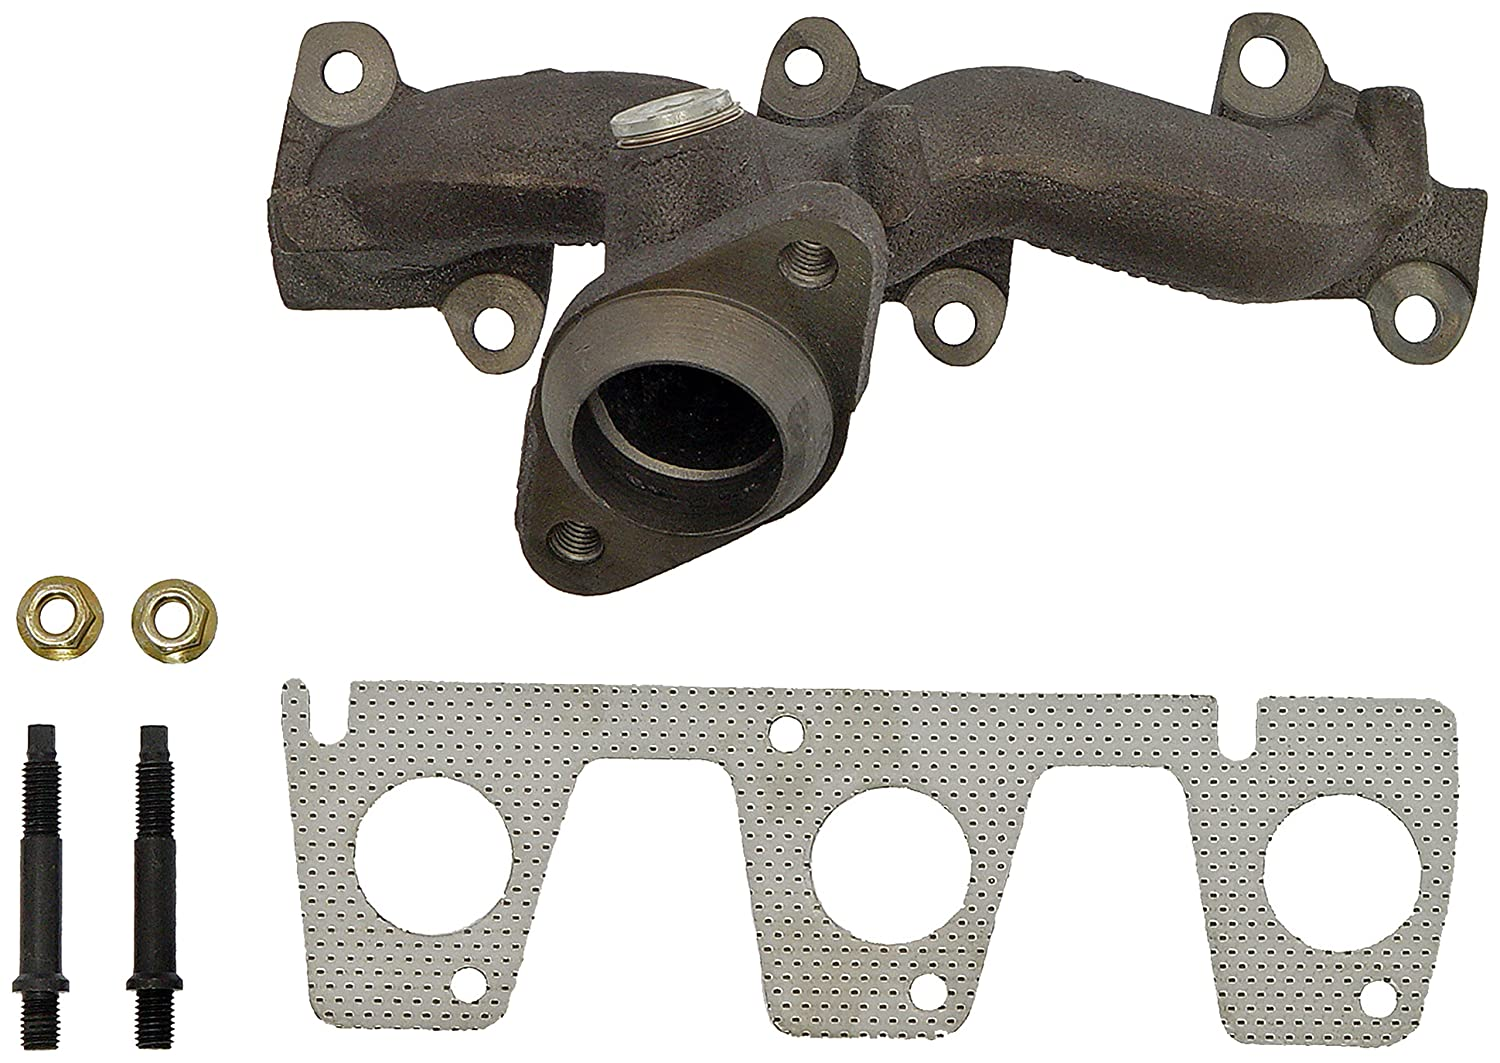 Mercury Models Dorman 674-362 Rear Exhaust Manifold Kit For Select Ford